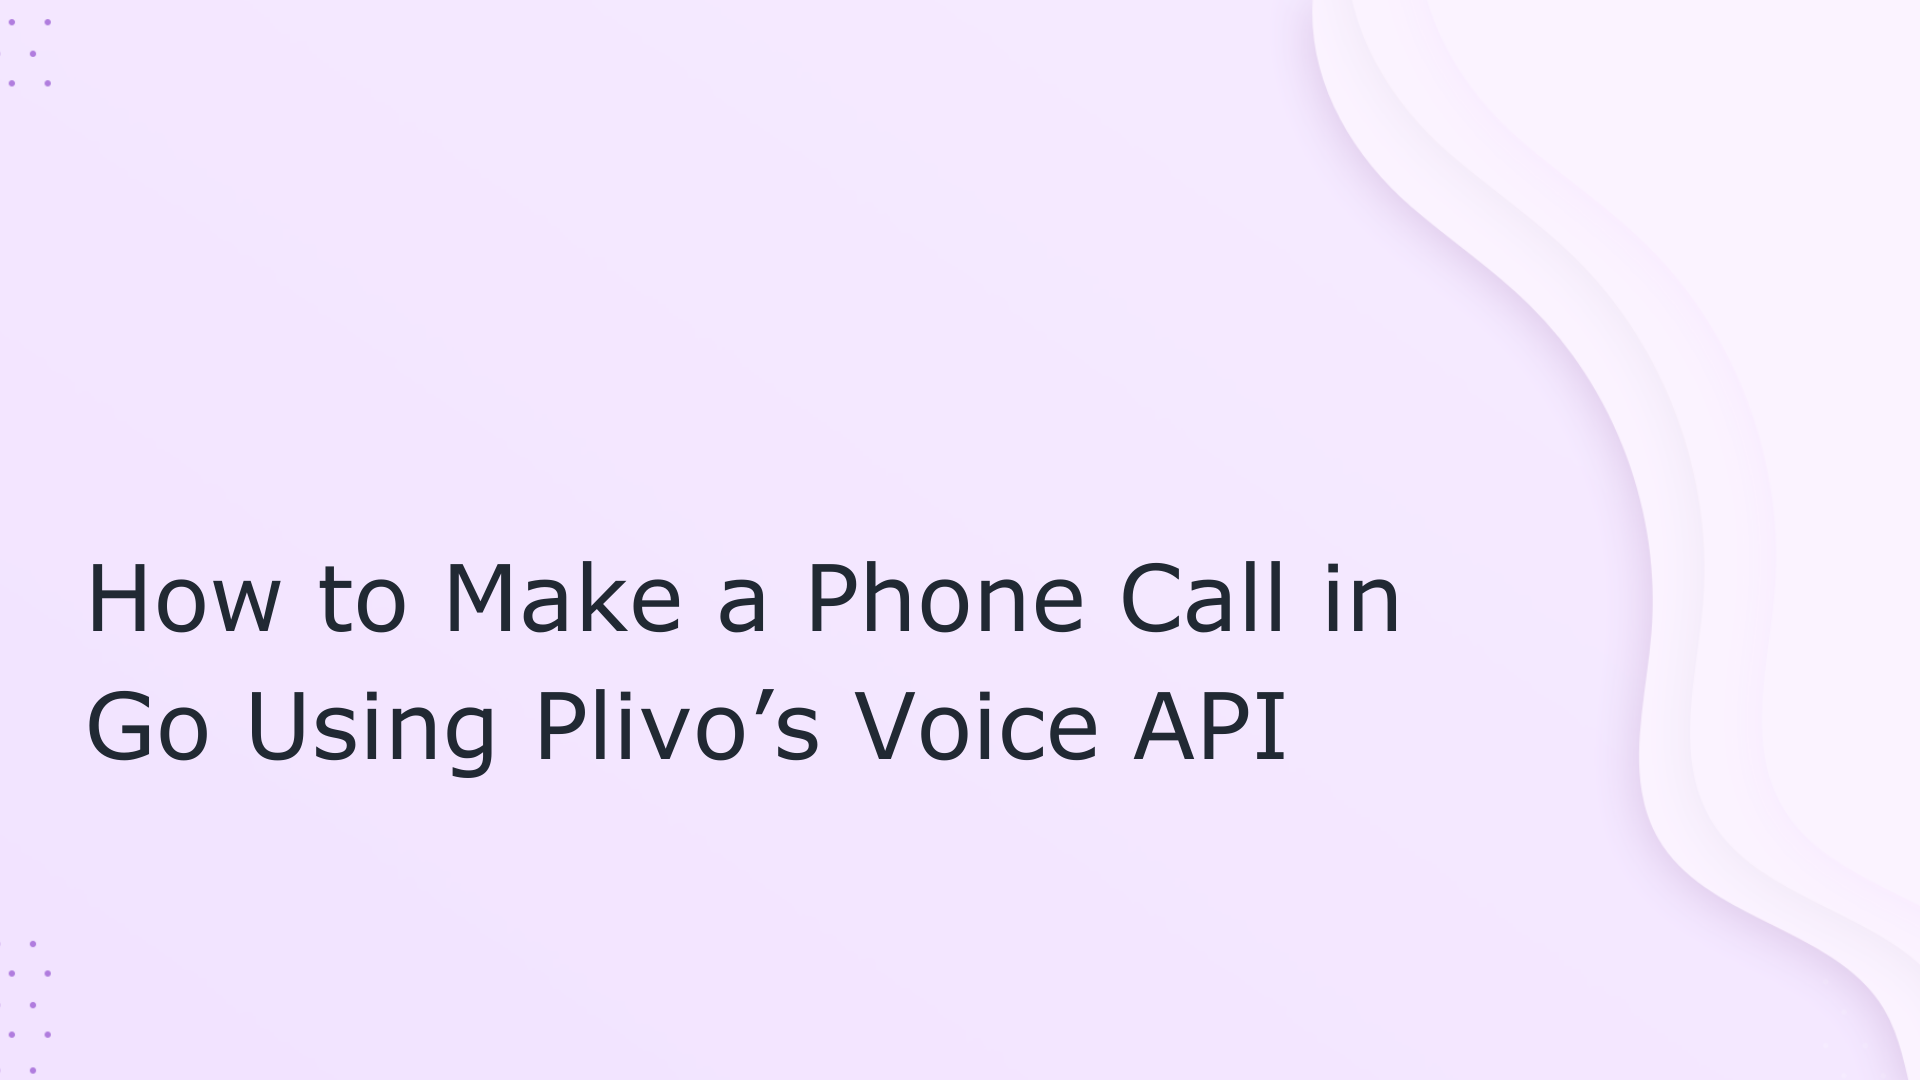 How to Make a Phone Call in Go Using Plivo's Voice API